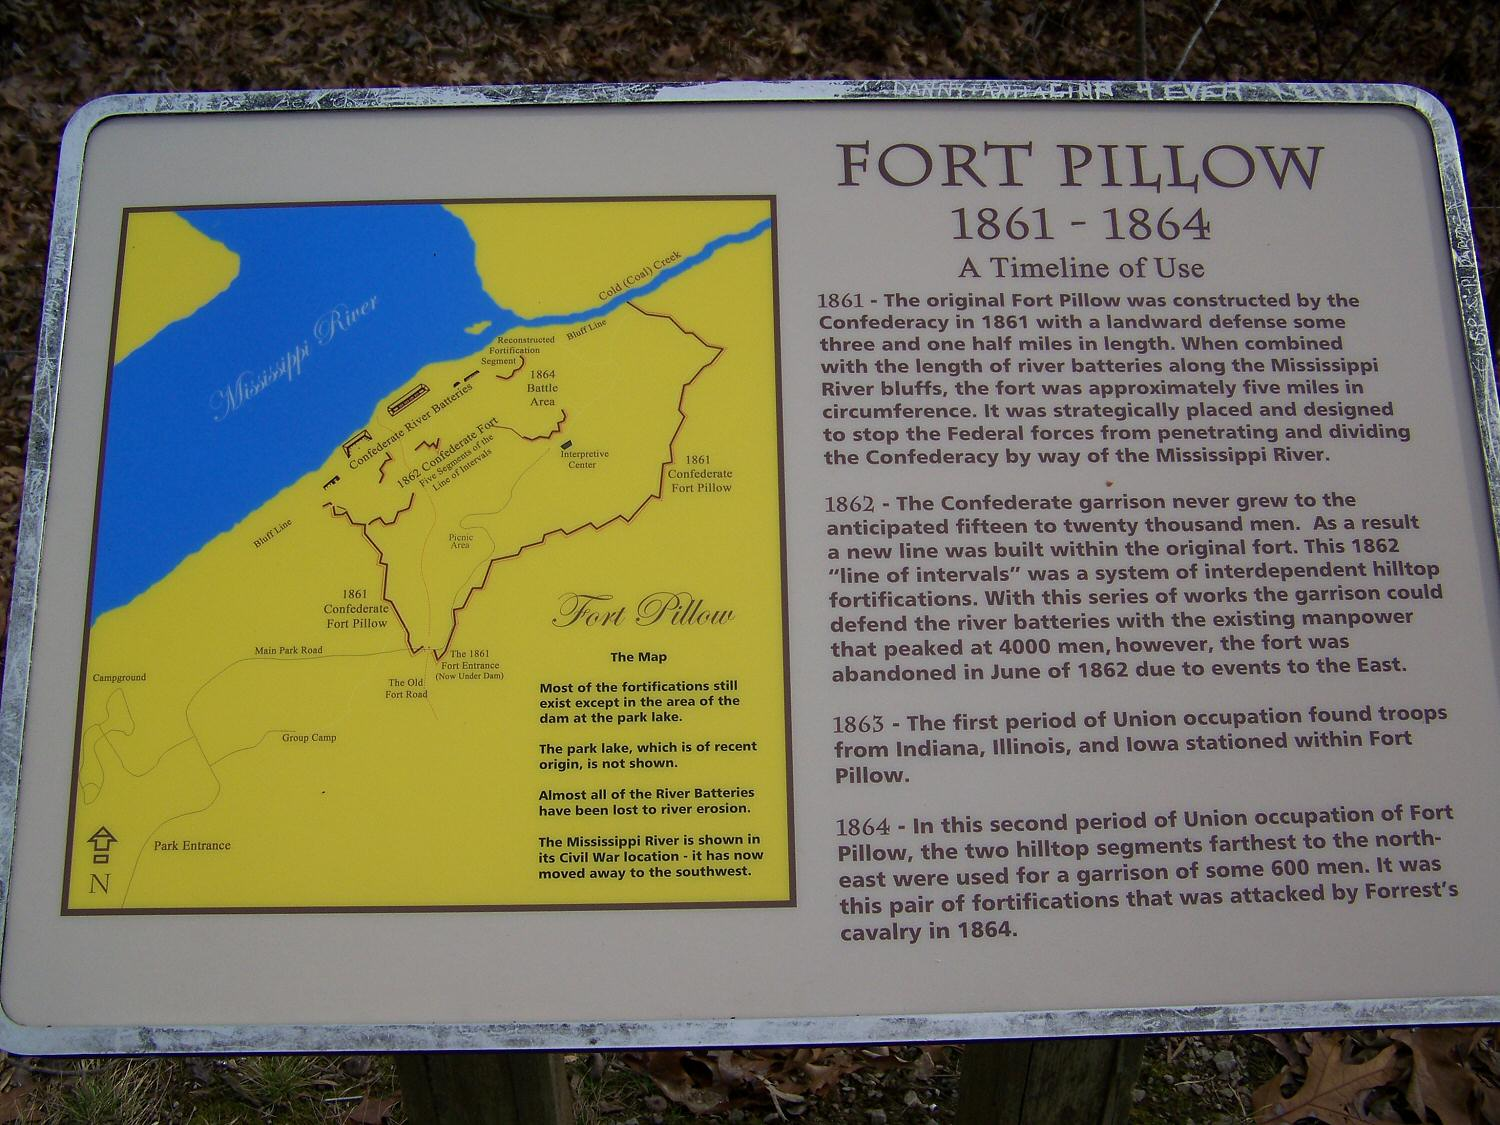 Fort Pillow site photos